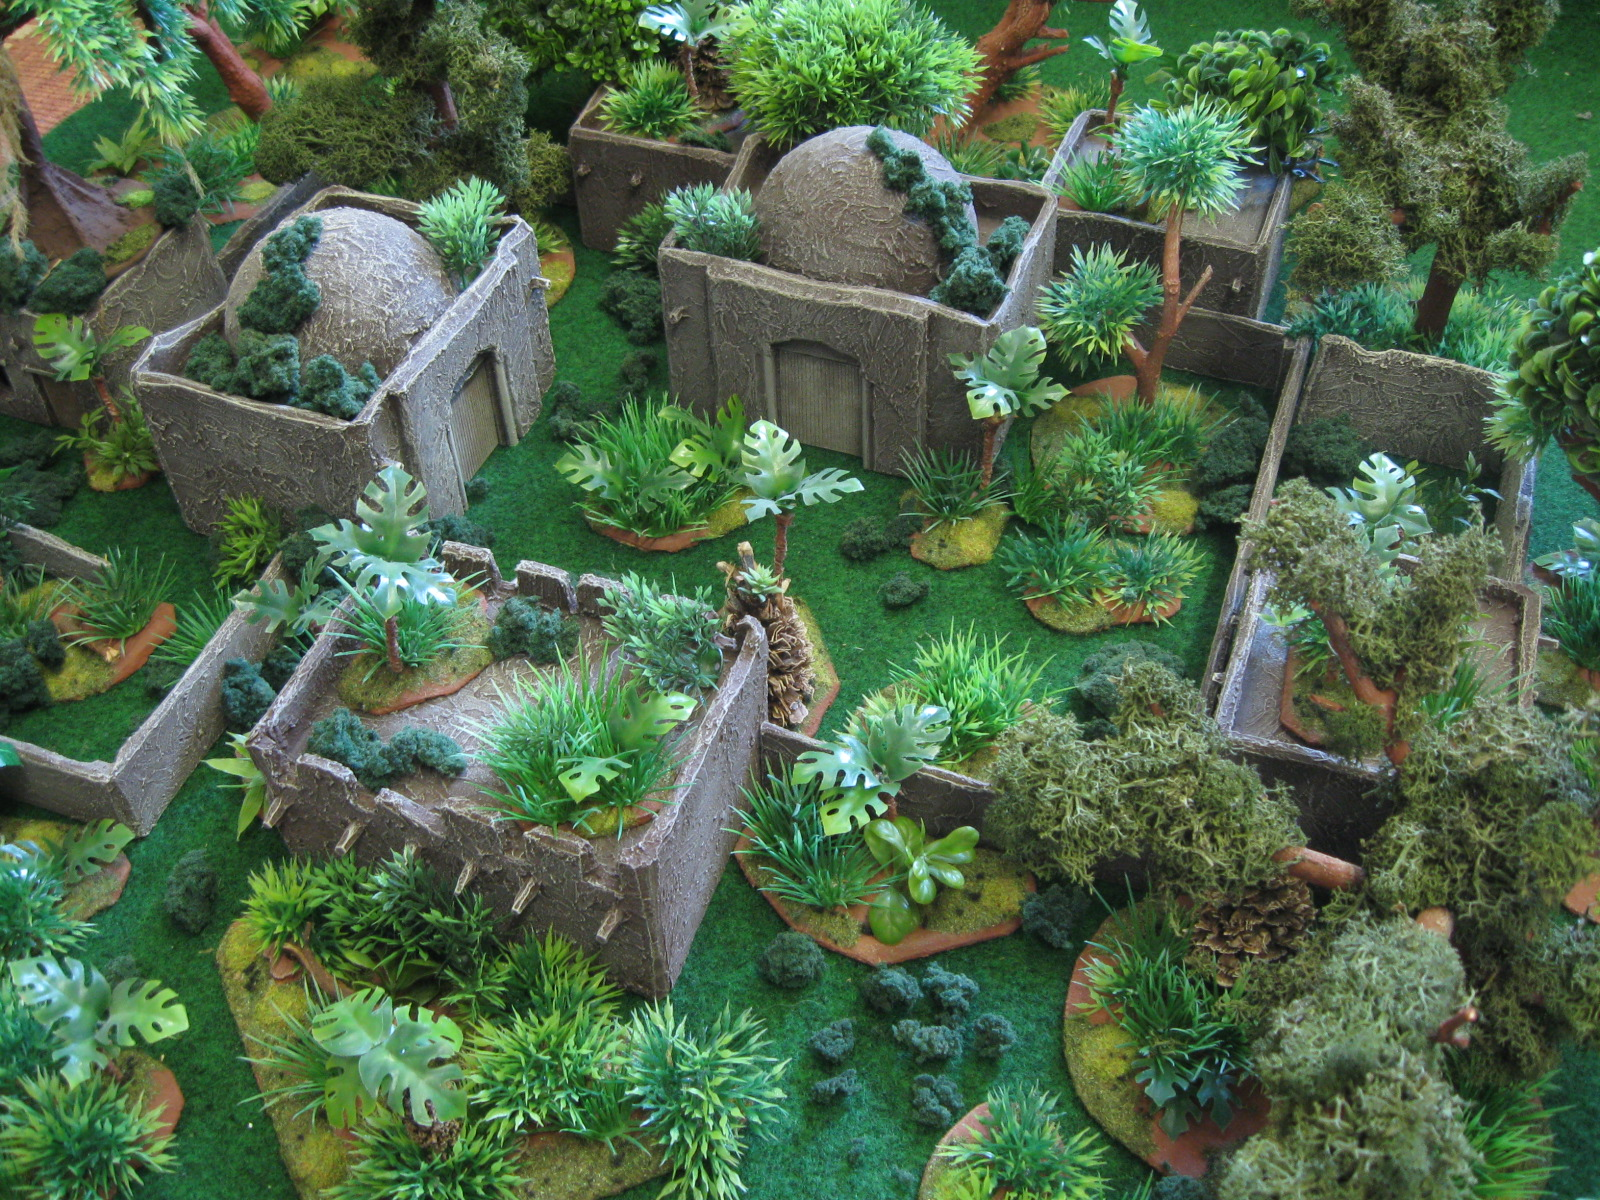 How to build miniature forest terrain